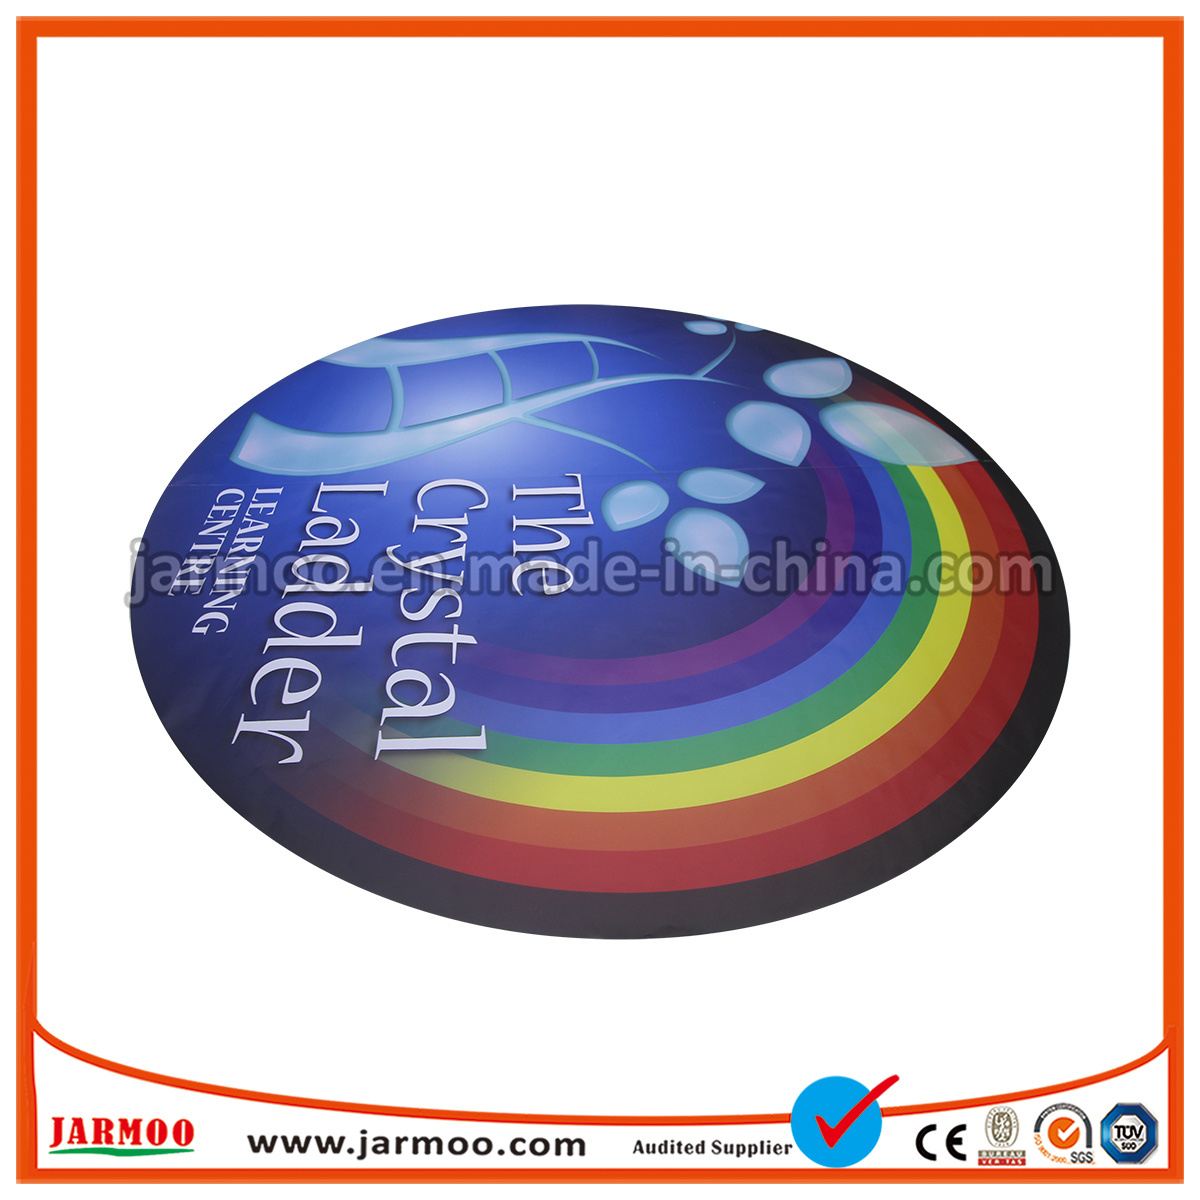 China custom logo decals waterproof car stickers china custom sticker pvc sticker